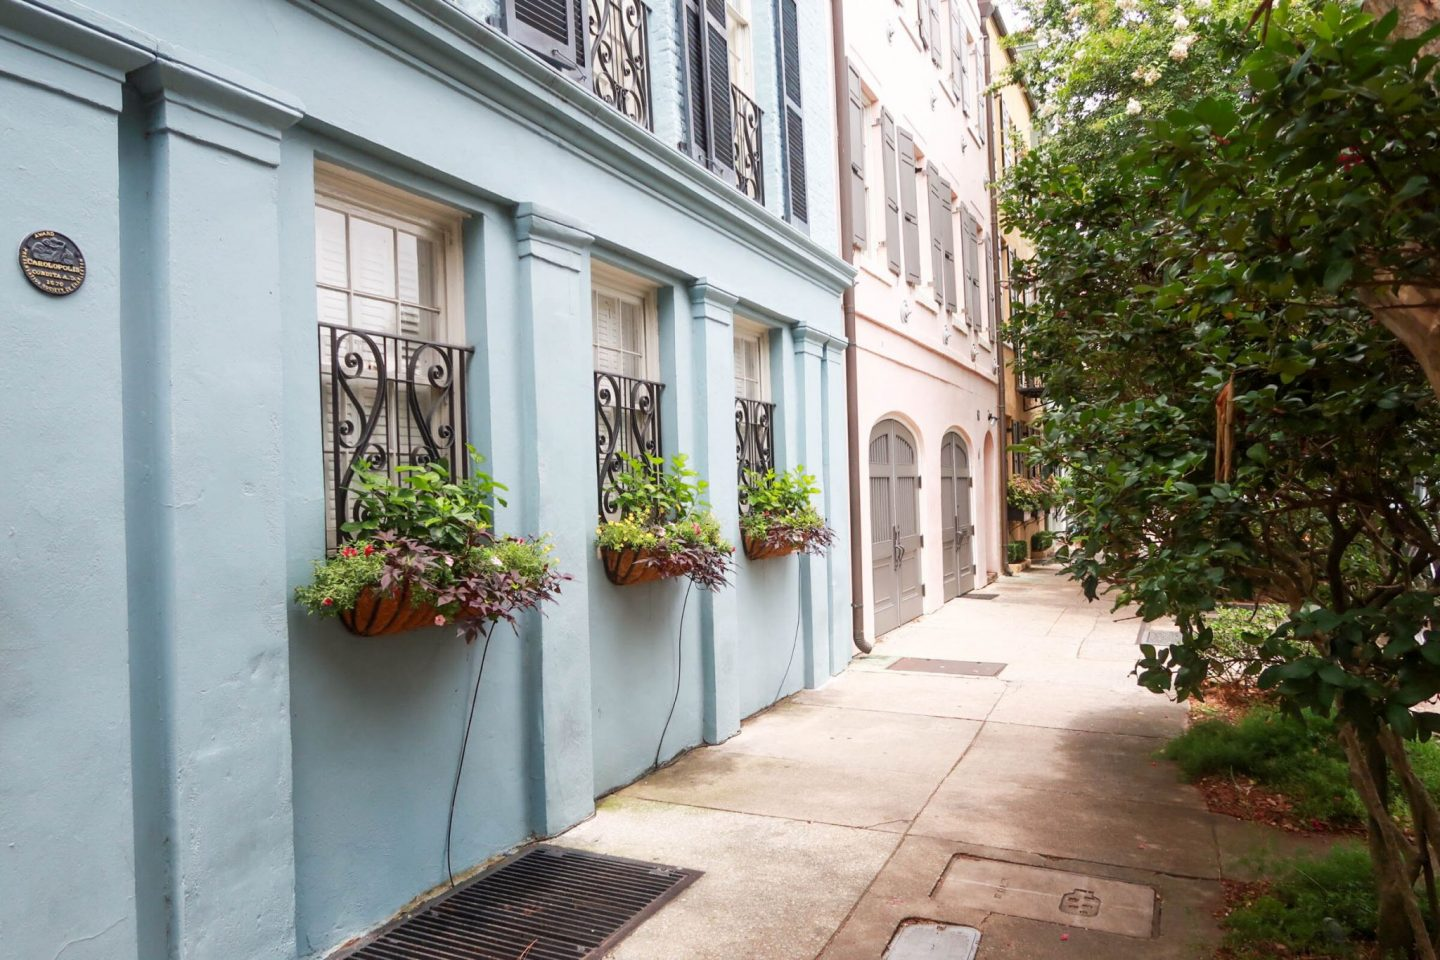 charleston - rainbow row